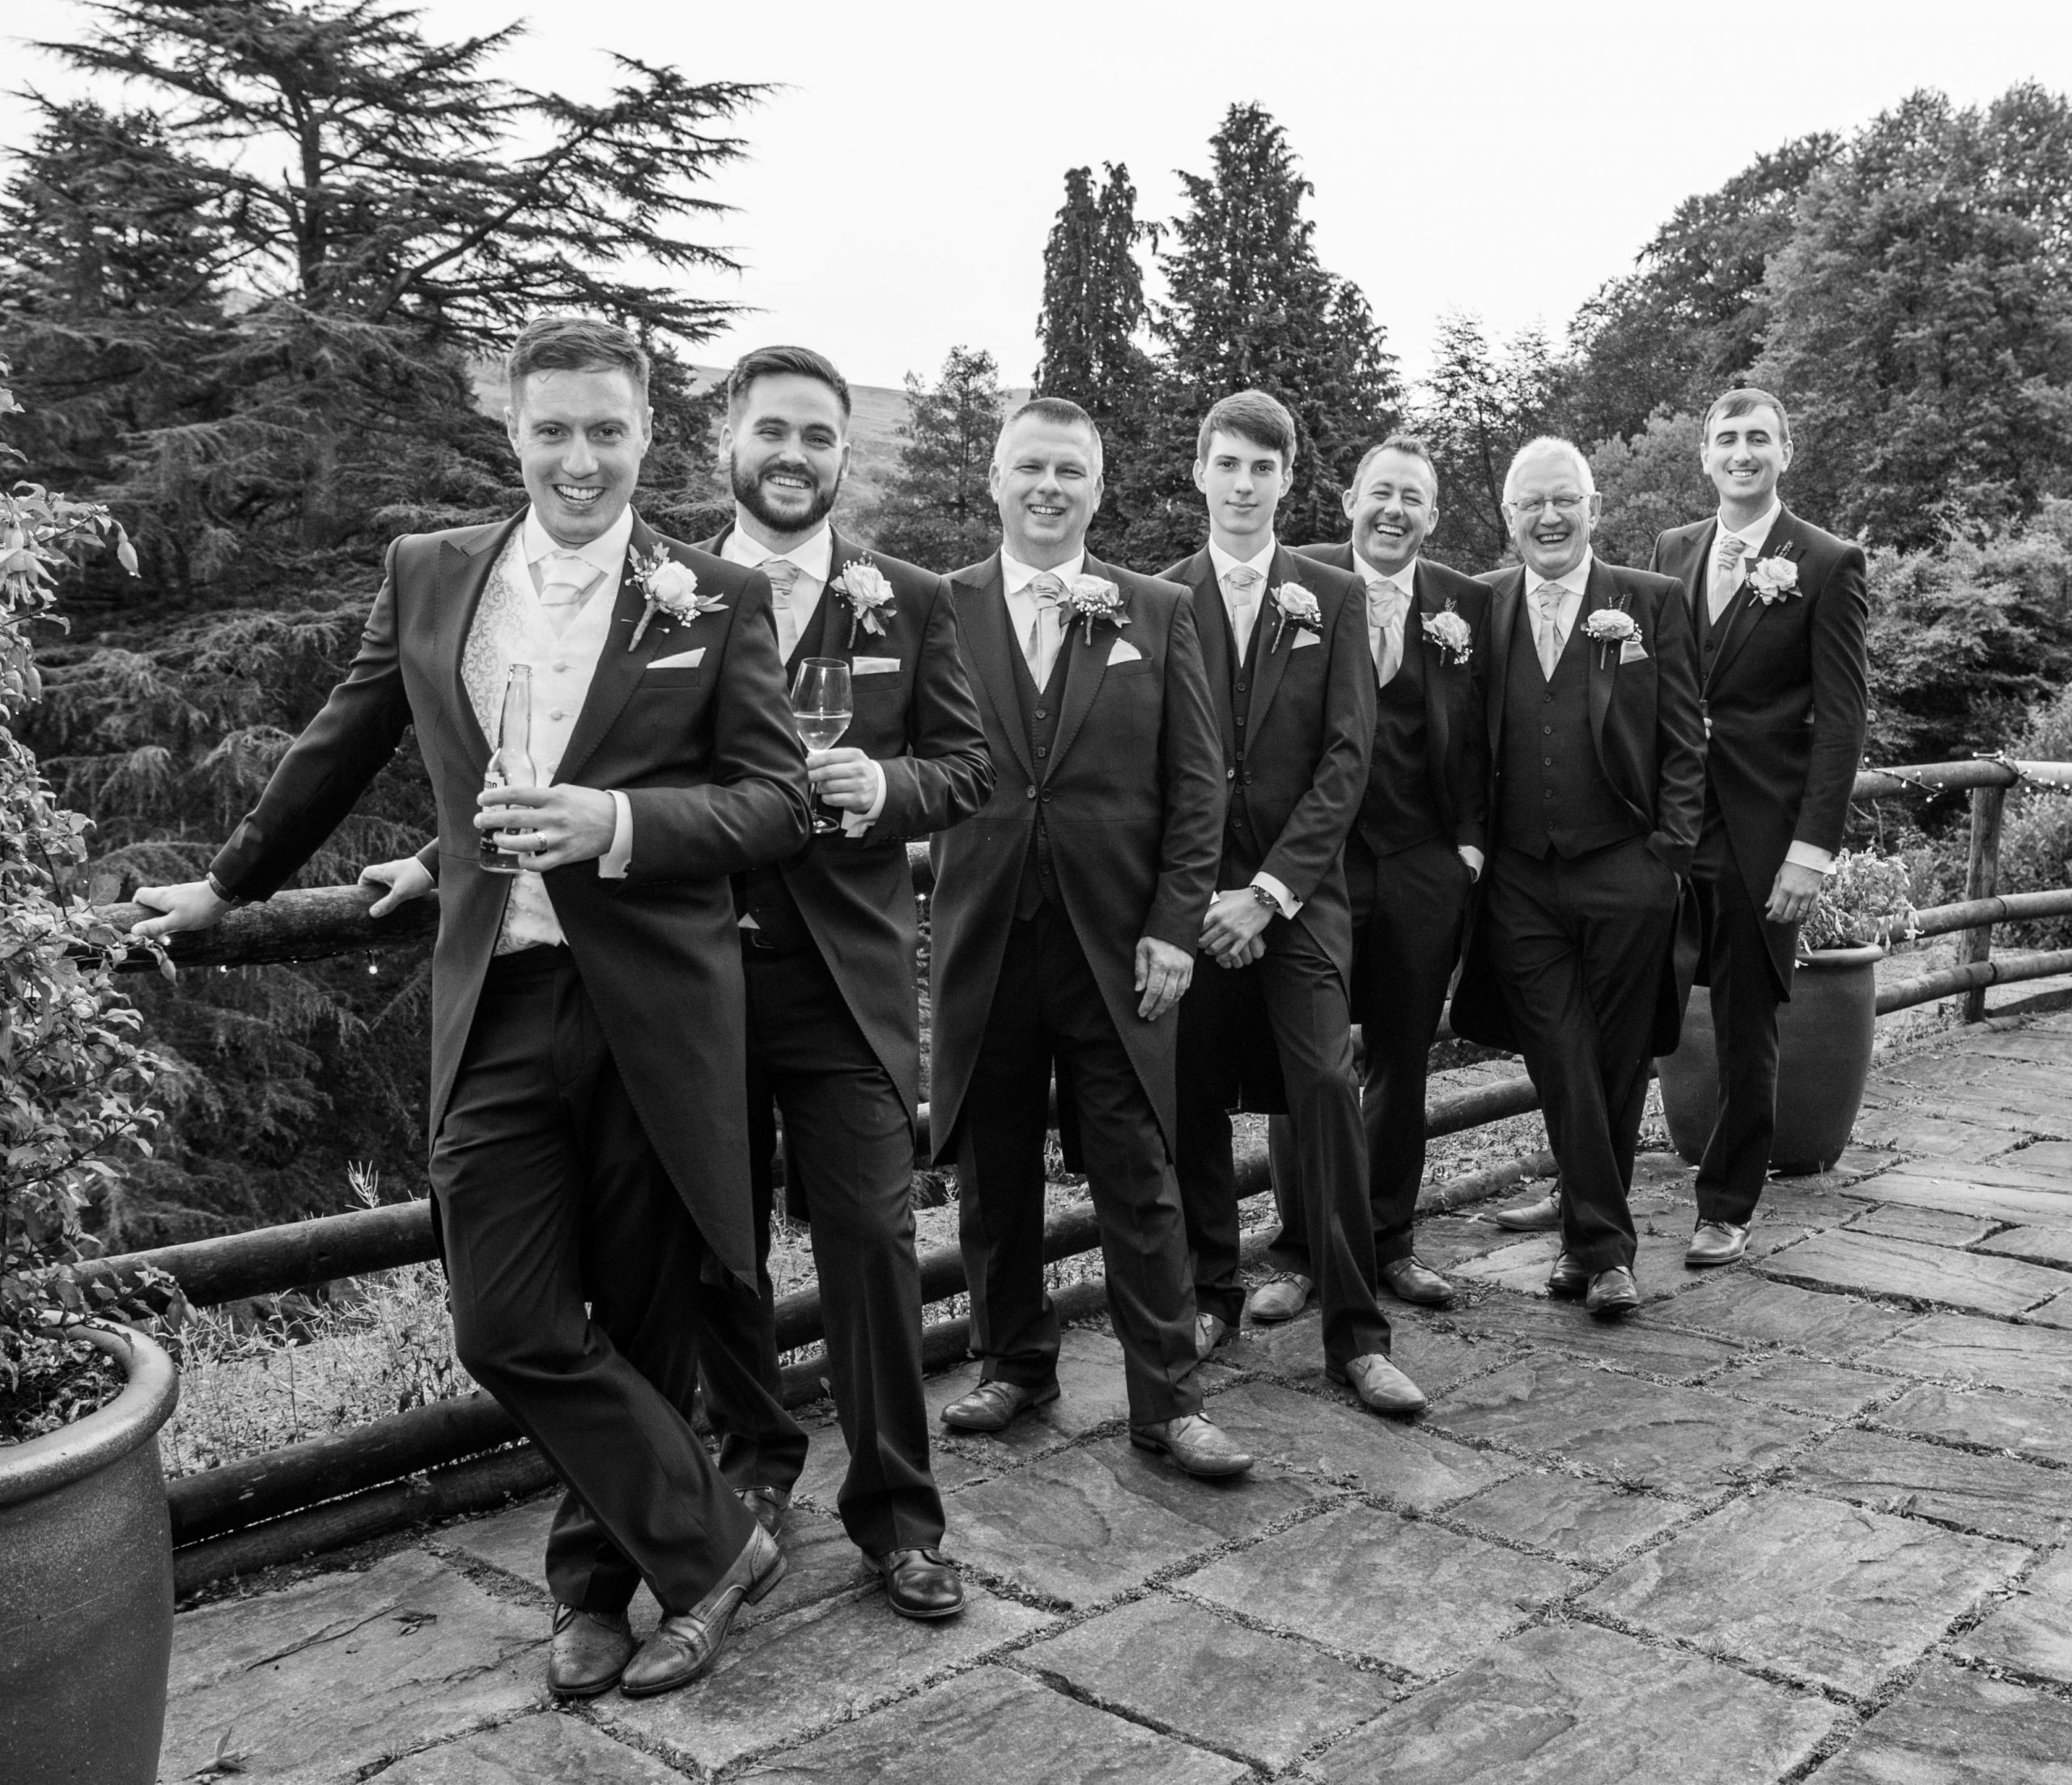 Wedding of Adam & Rachael at Craig-Y-Nos Castle, Tania Miller Photography, Craig-Y-Nos Wedding Photographer, Brecon Wedding Photographer